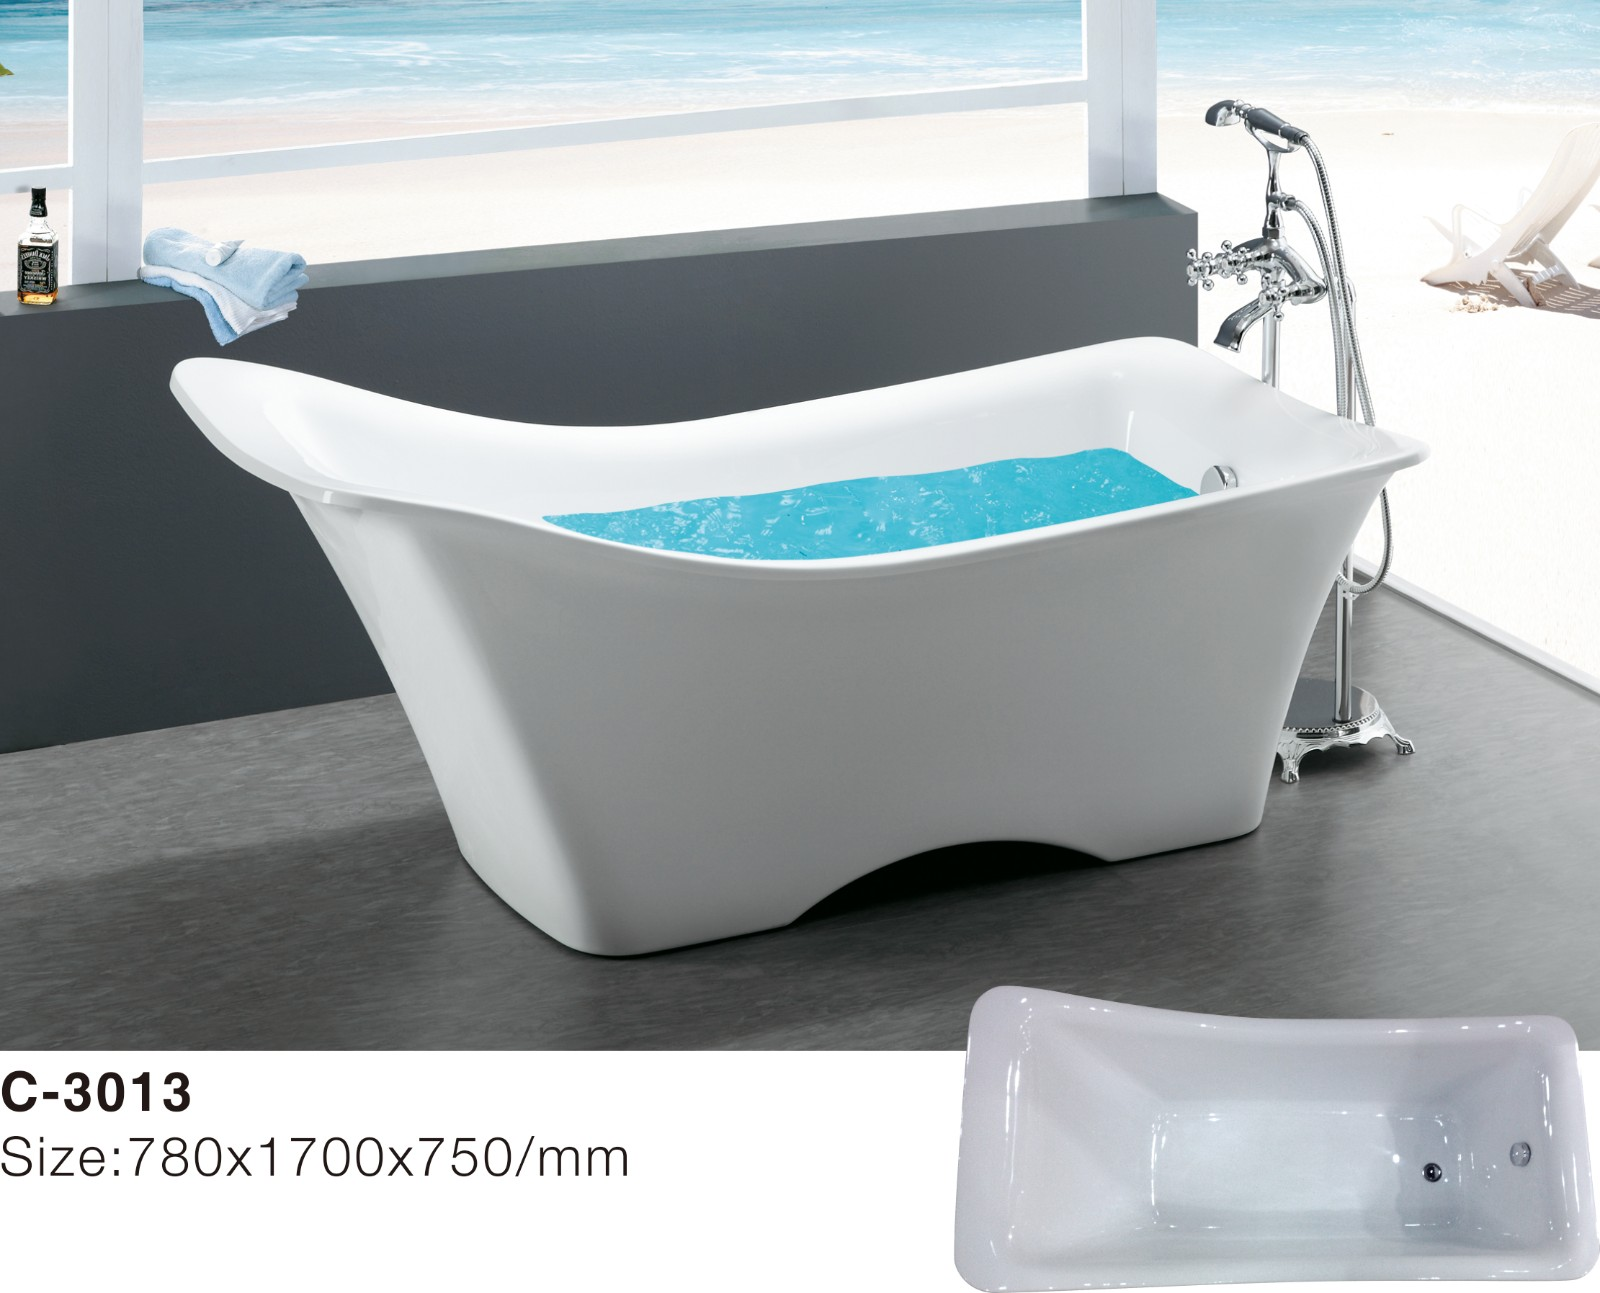 (1) C-3013 -Europe-Style Irregular Shape Acrylic Freestanding Bathtub, White.jpg